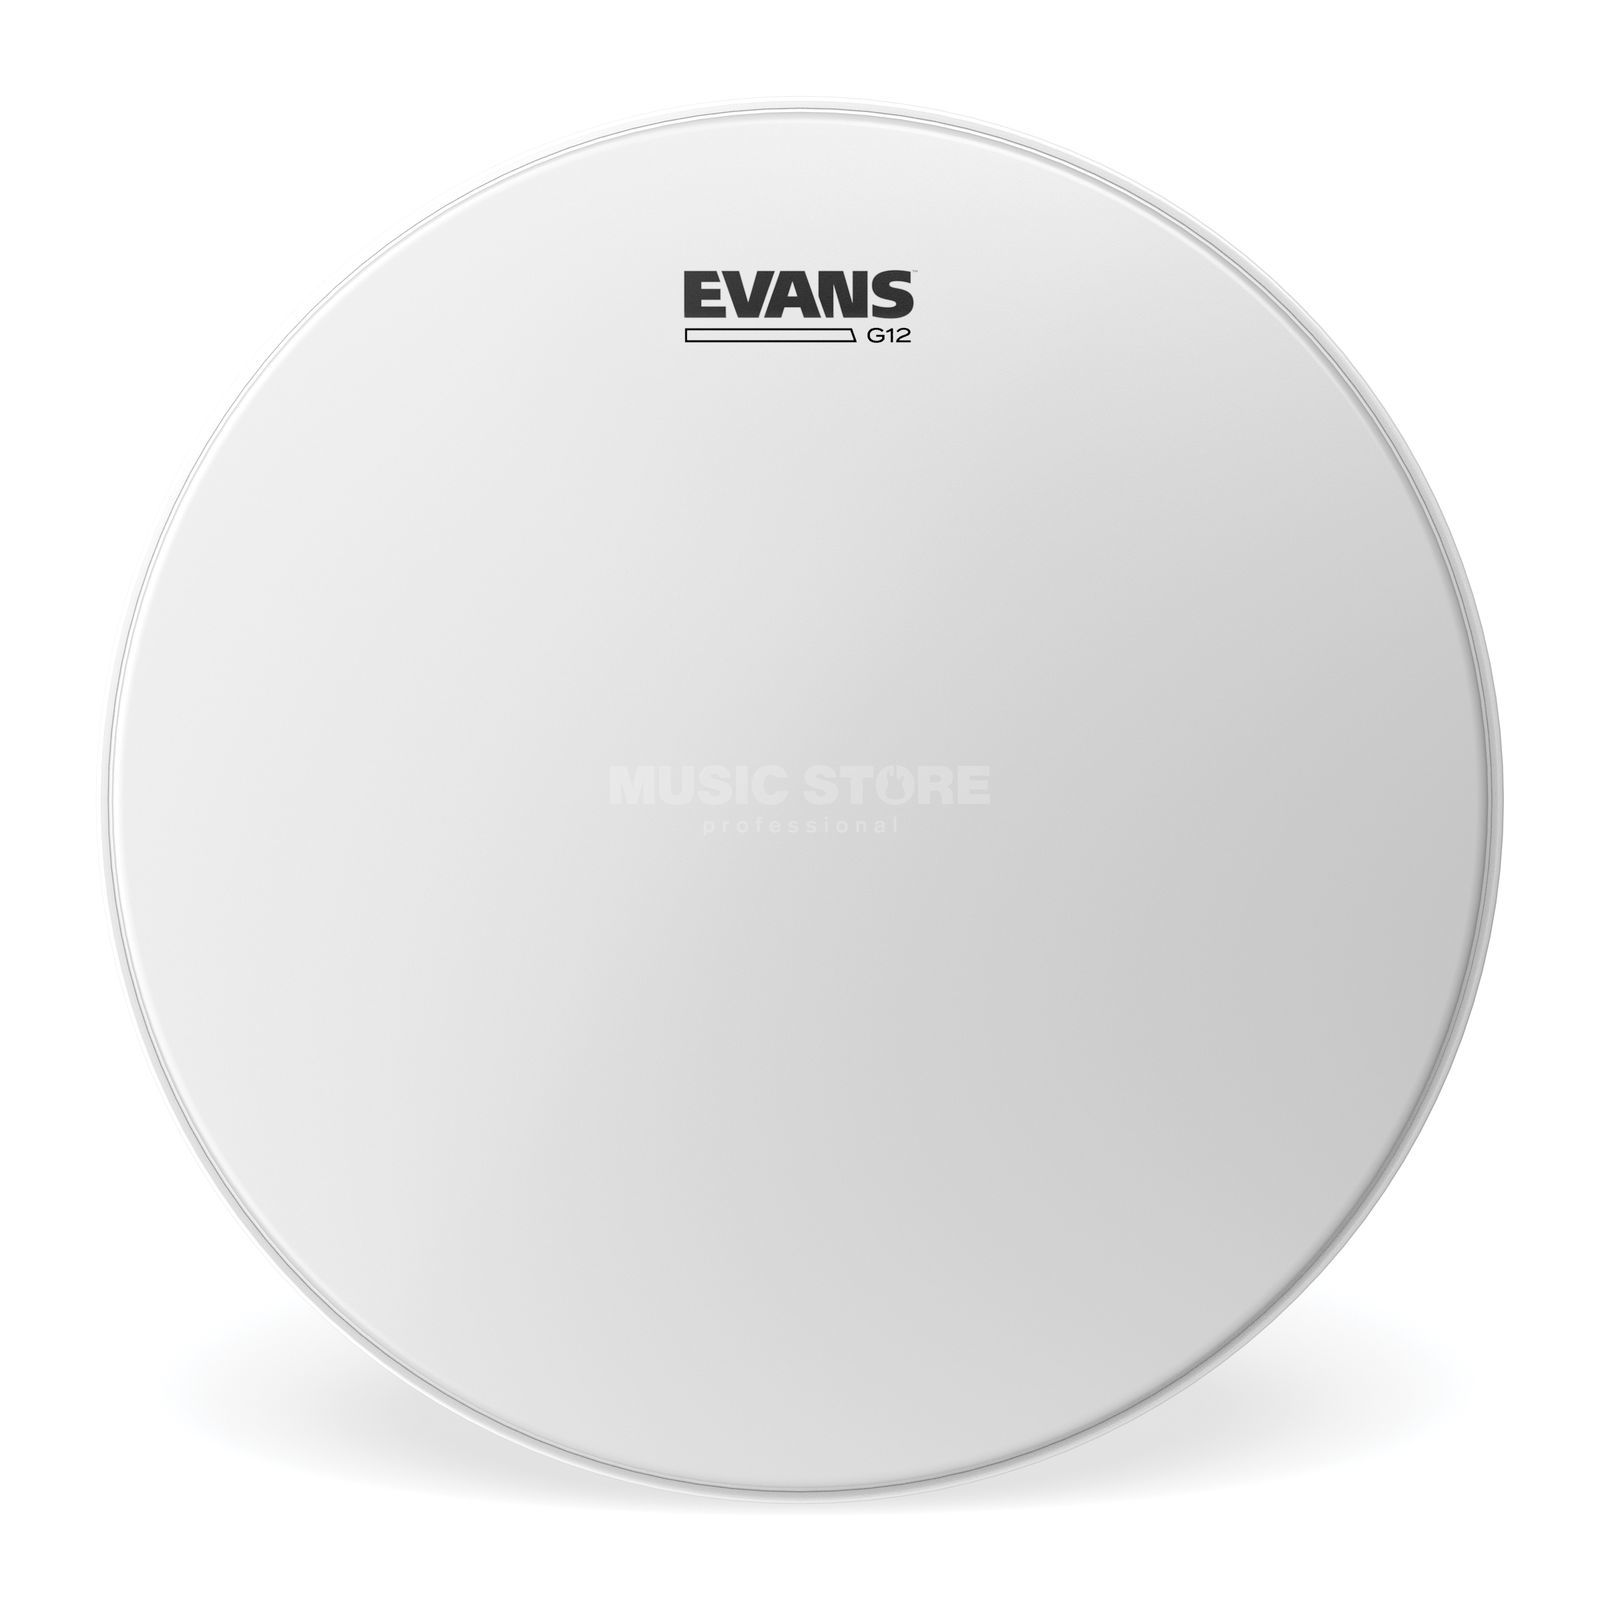 "Evans G12 13"" coated, B13G12, Tom Batter Produktbild"